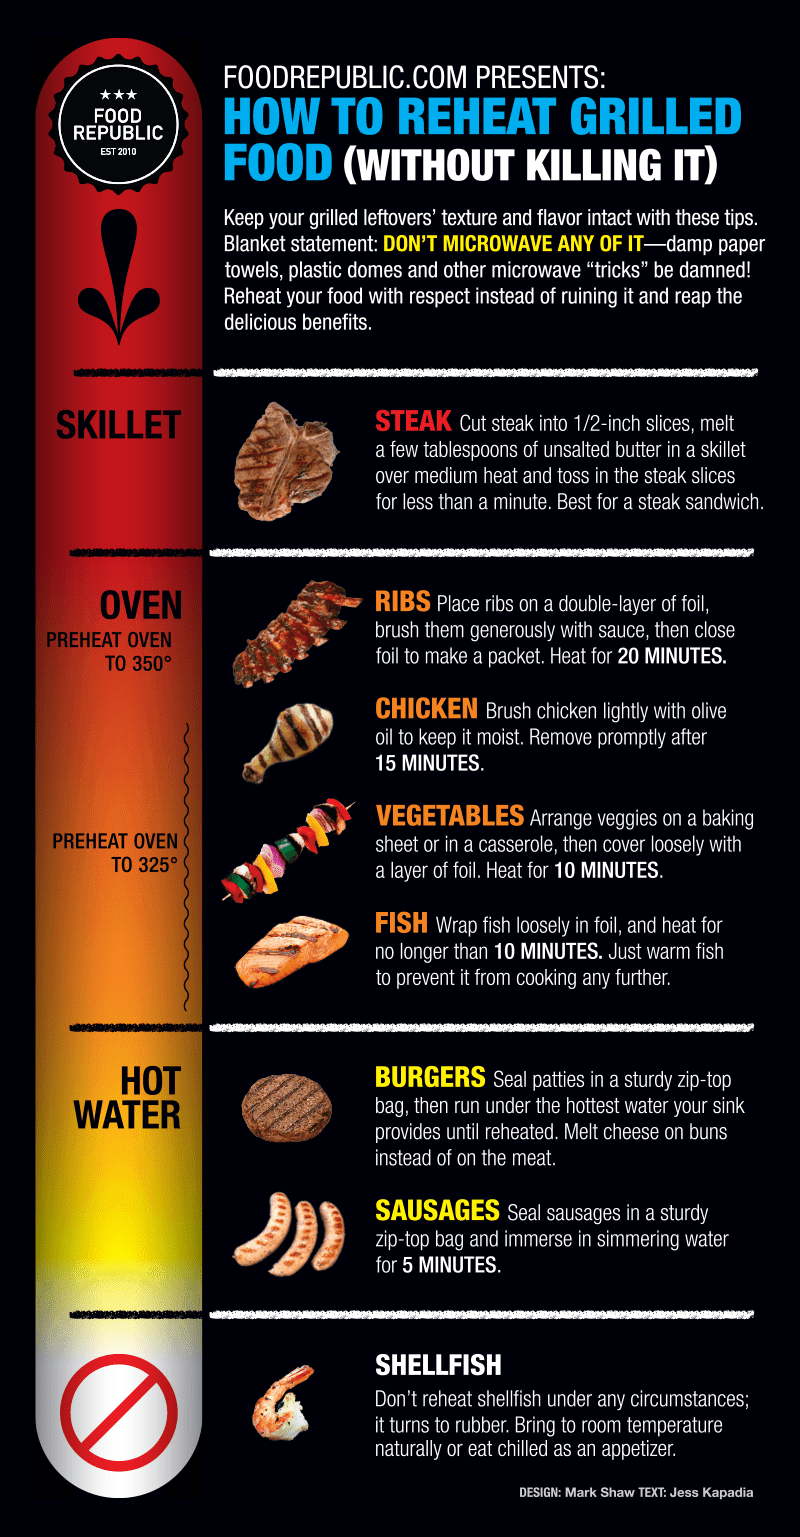 How To Reheat Grilled Food Without Killing It #infographic   #Grilled Food #infographics #Food #Reheat Grilled